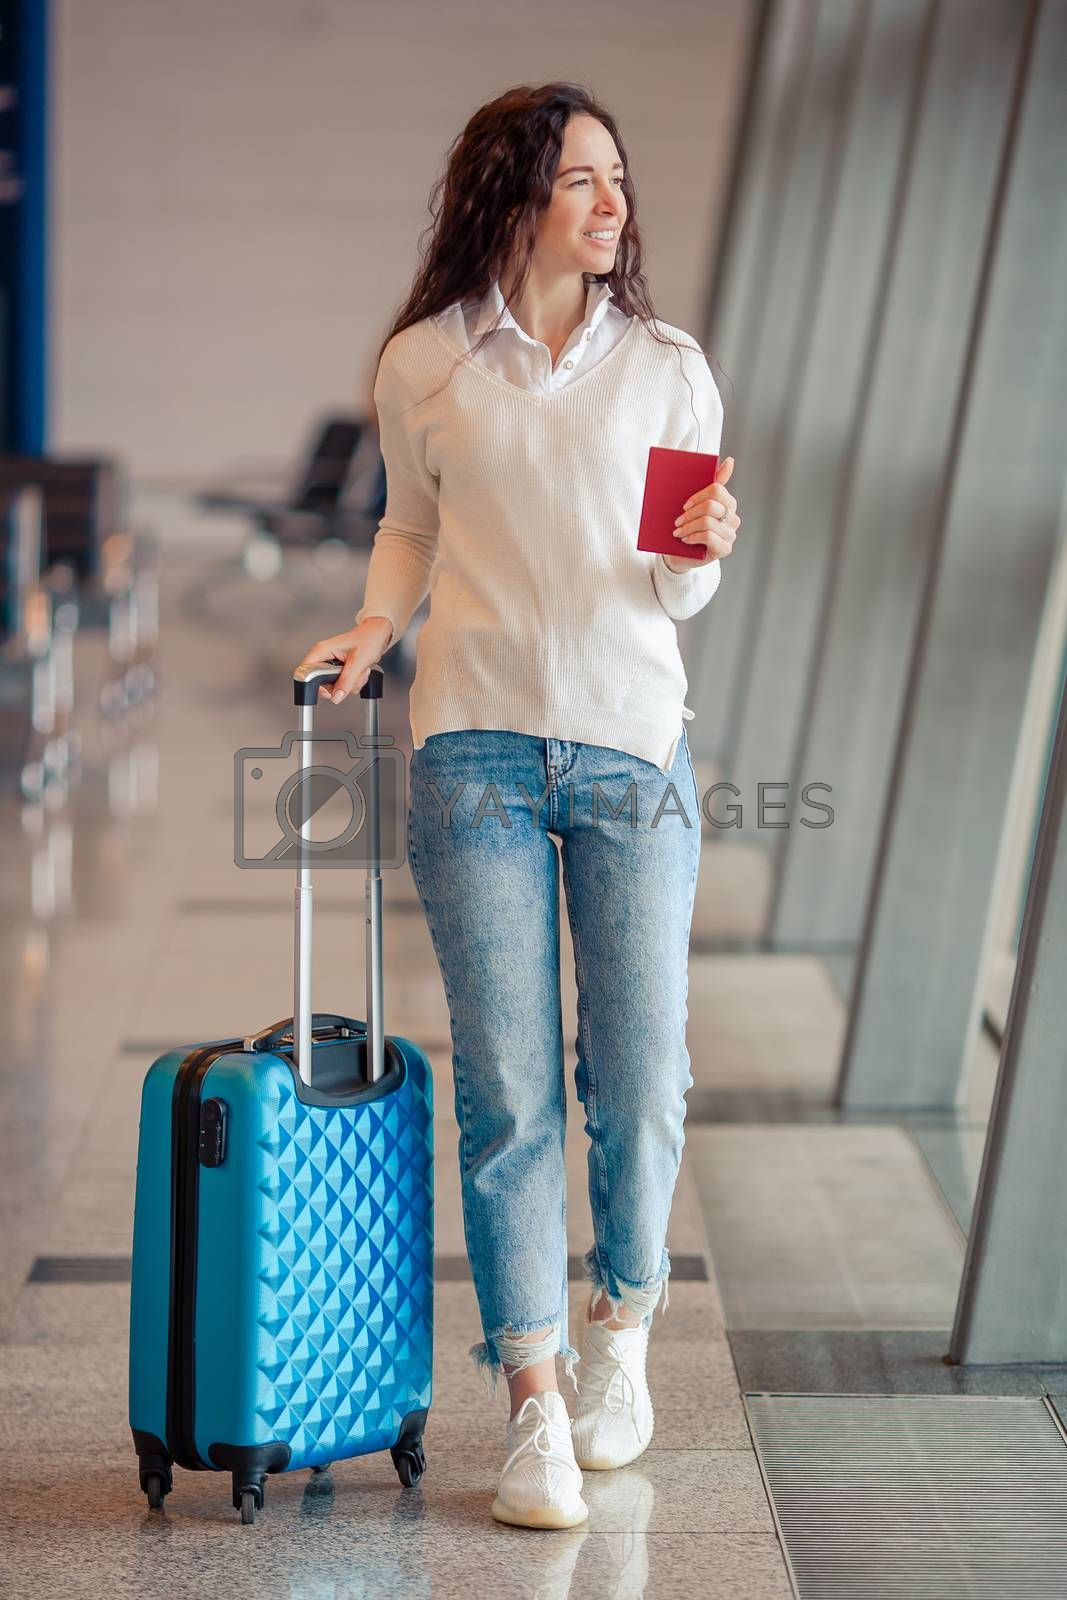 Young woman in international airport walking with her luggage. Airline passenger in an airport lounge waiting for flight aircraft